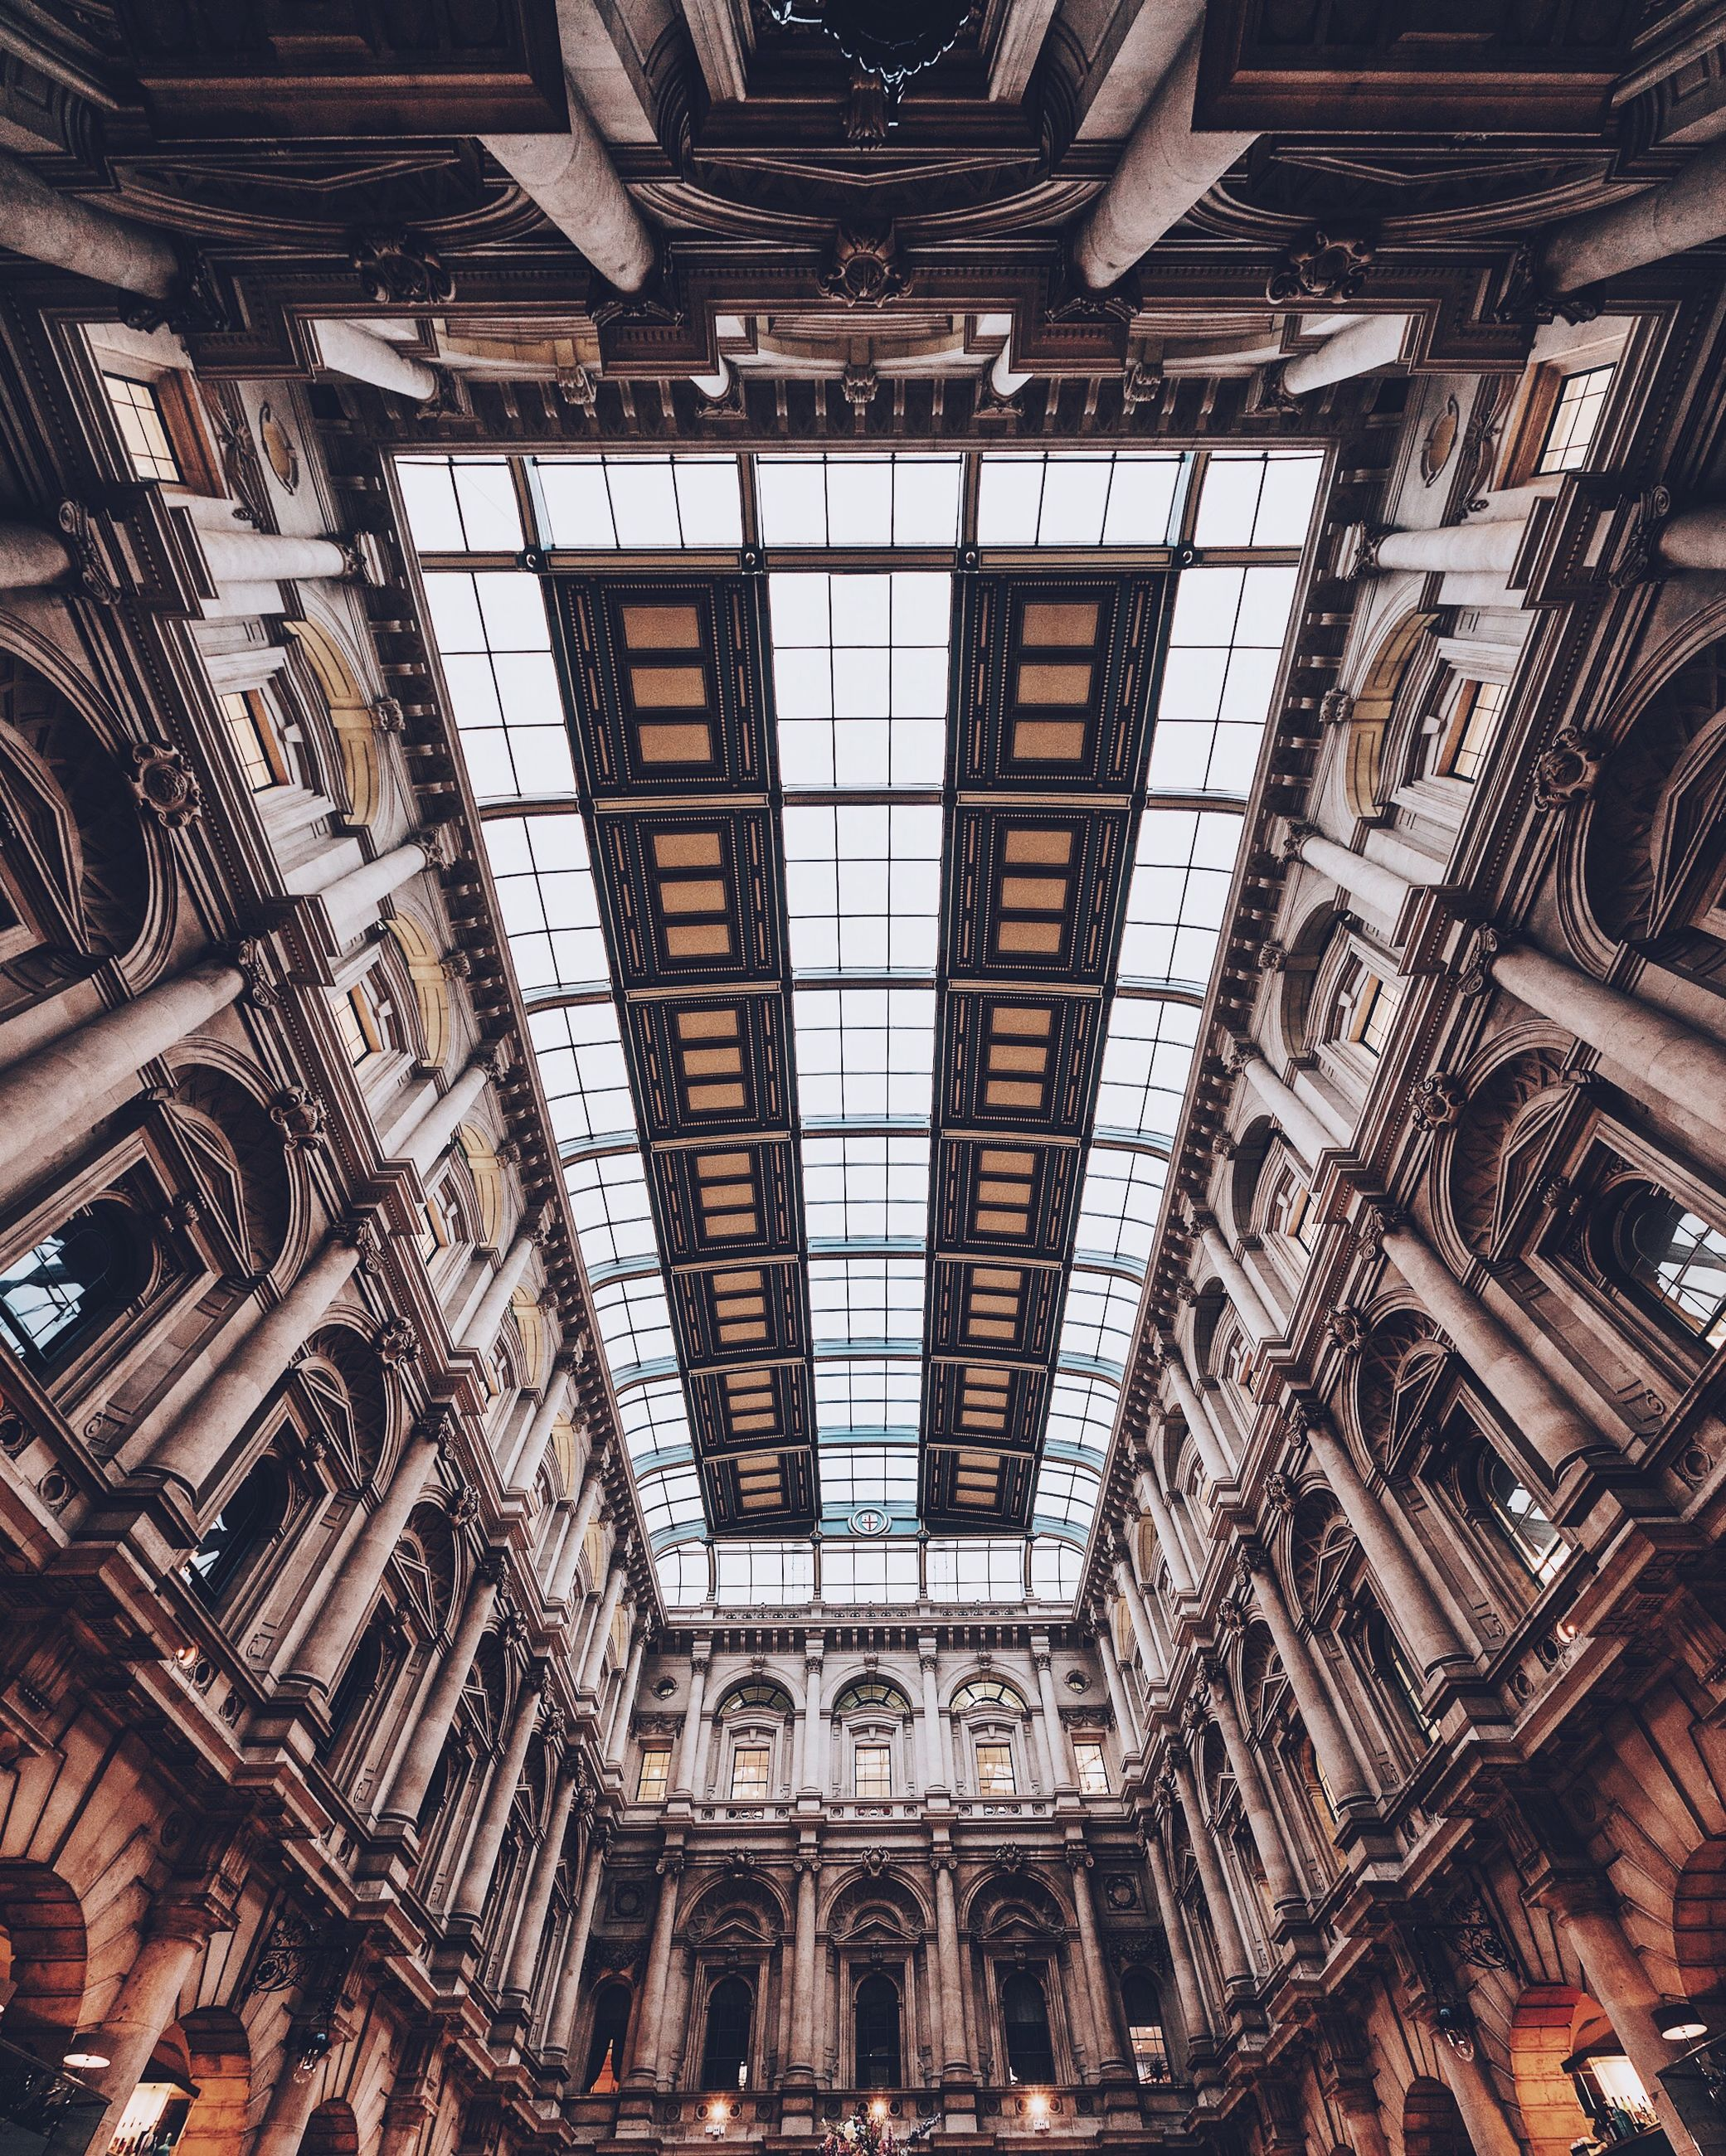 ceiling, architecture, indoors, built structure, low angle view, travel destinations, no people, day, tourism, travel, pattern, building, arch, shopping mall, history, city, architectural feature, the past, architecture and art, ornate, directly below, gothic style